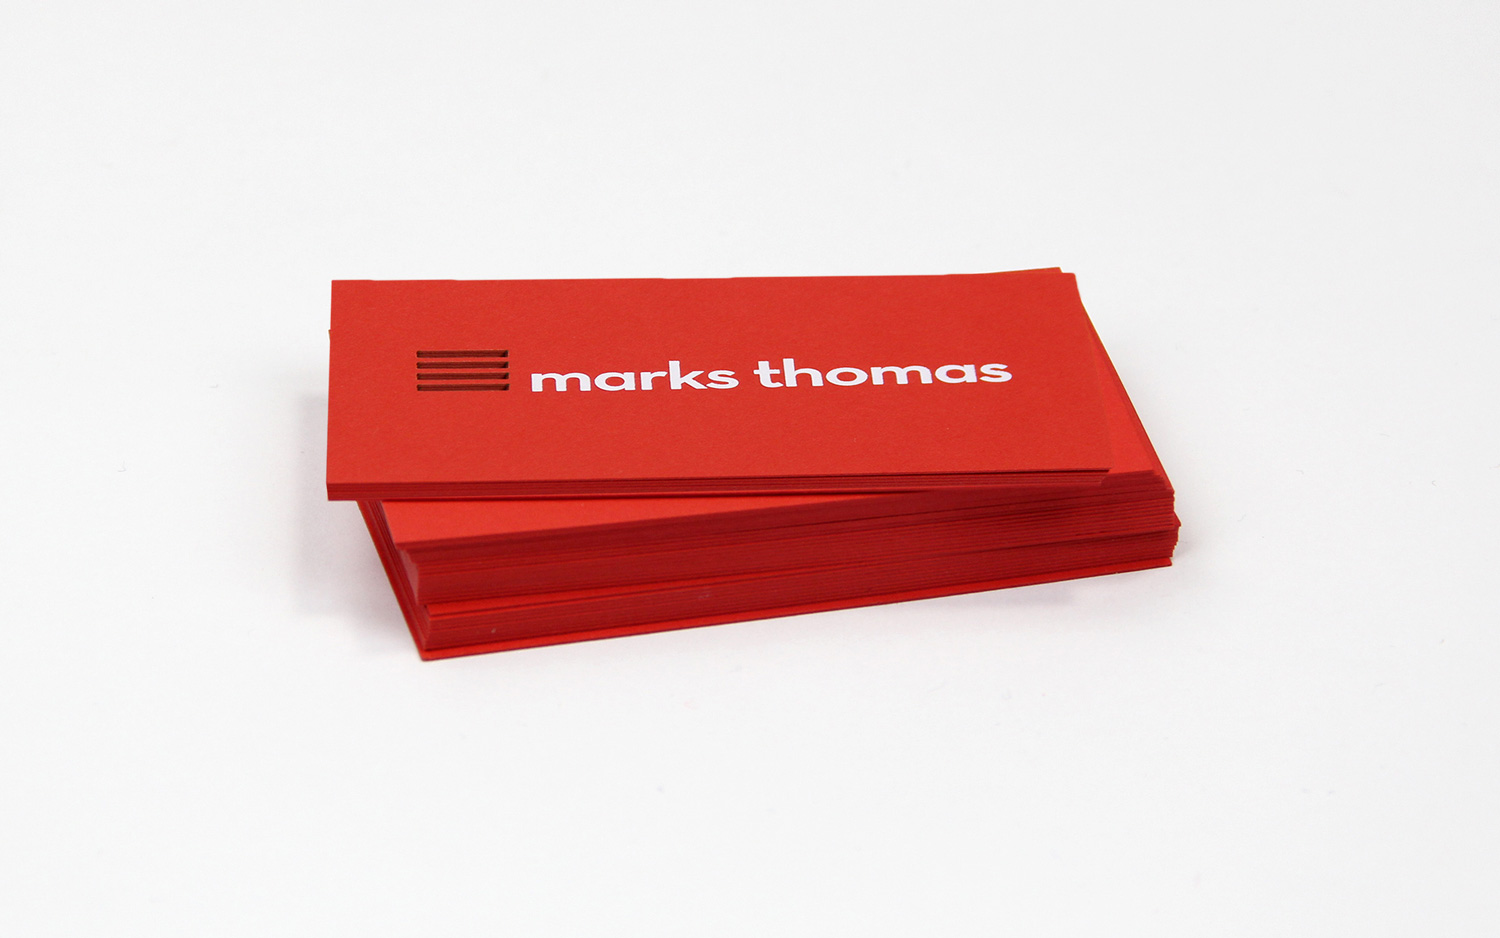 stack of marks thomas business cards